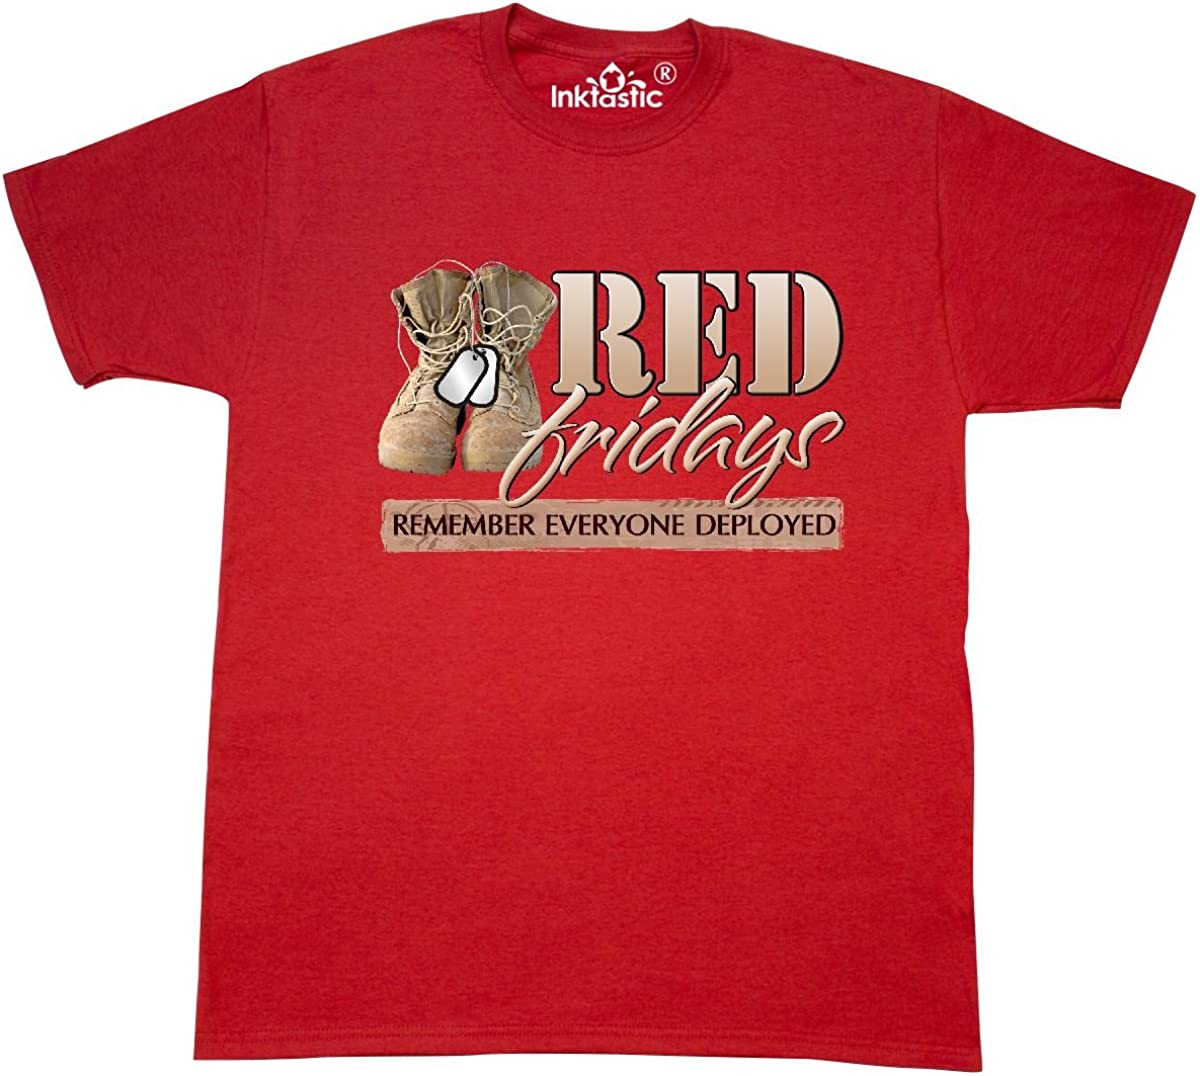 inktastic Red Fridays (Remember Everyone Deployed) T-Shirt